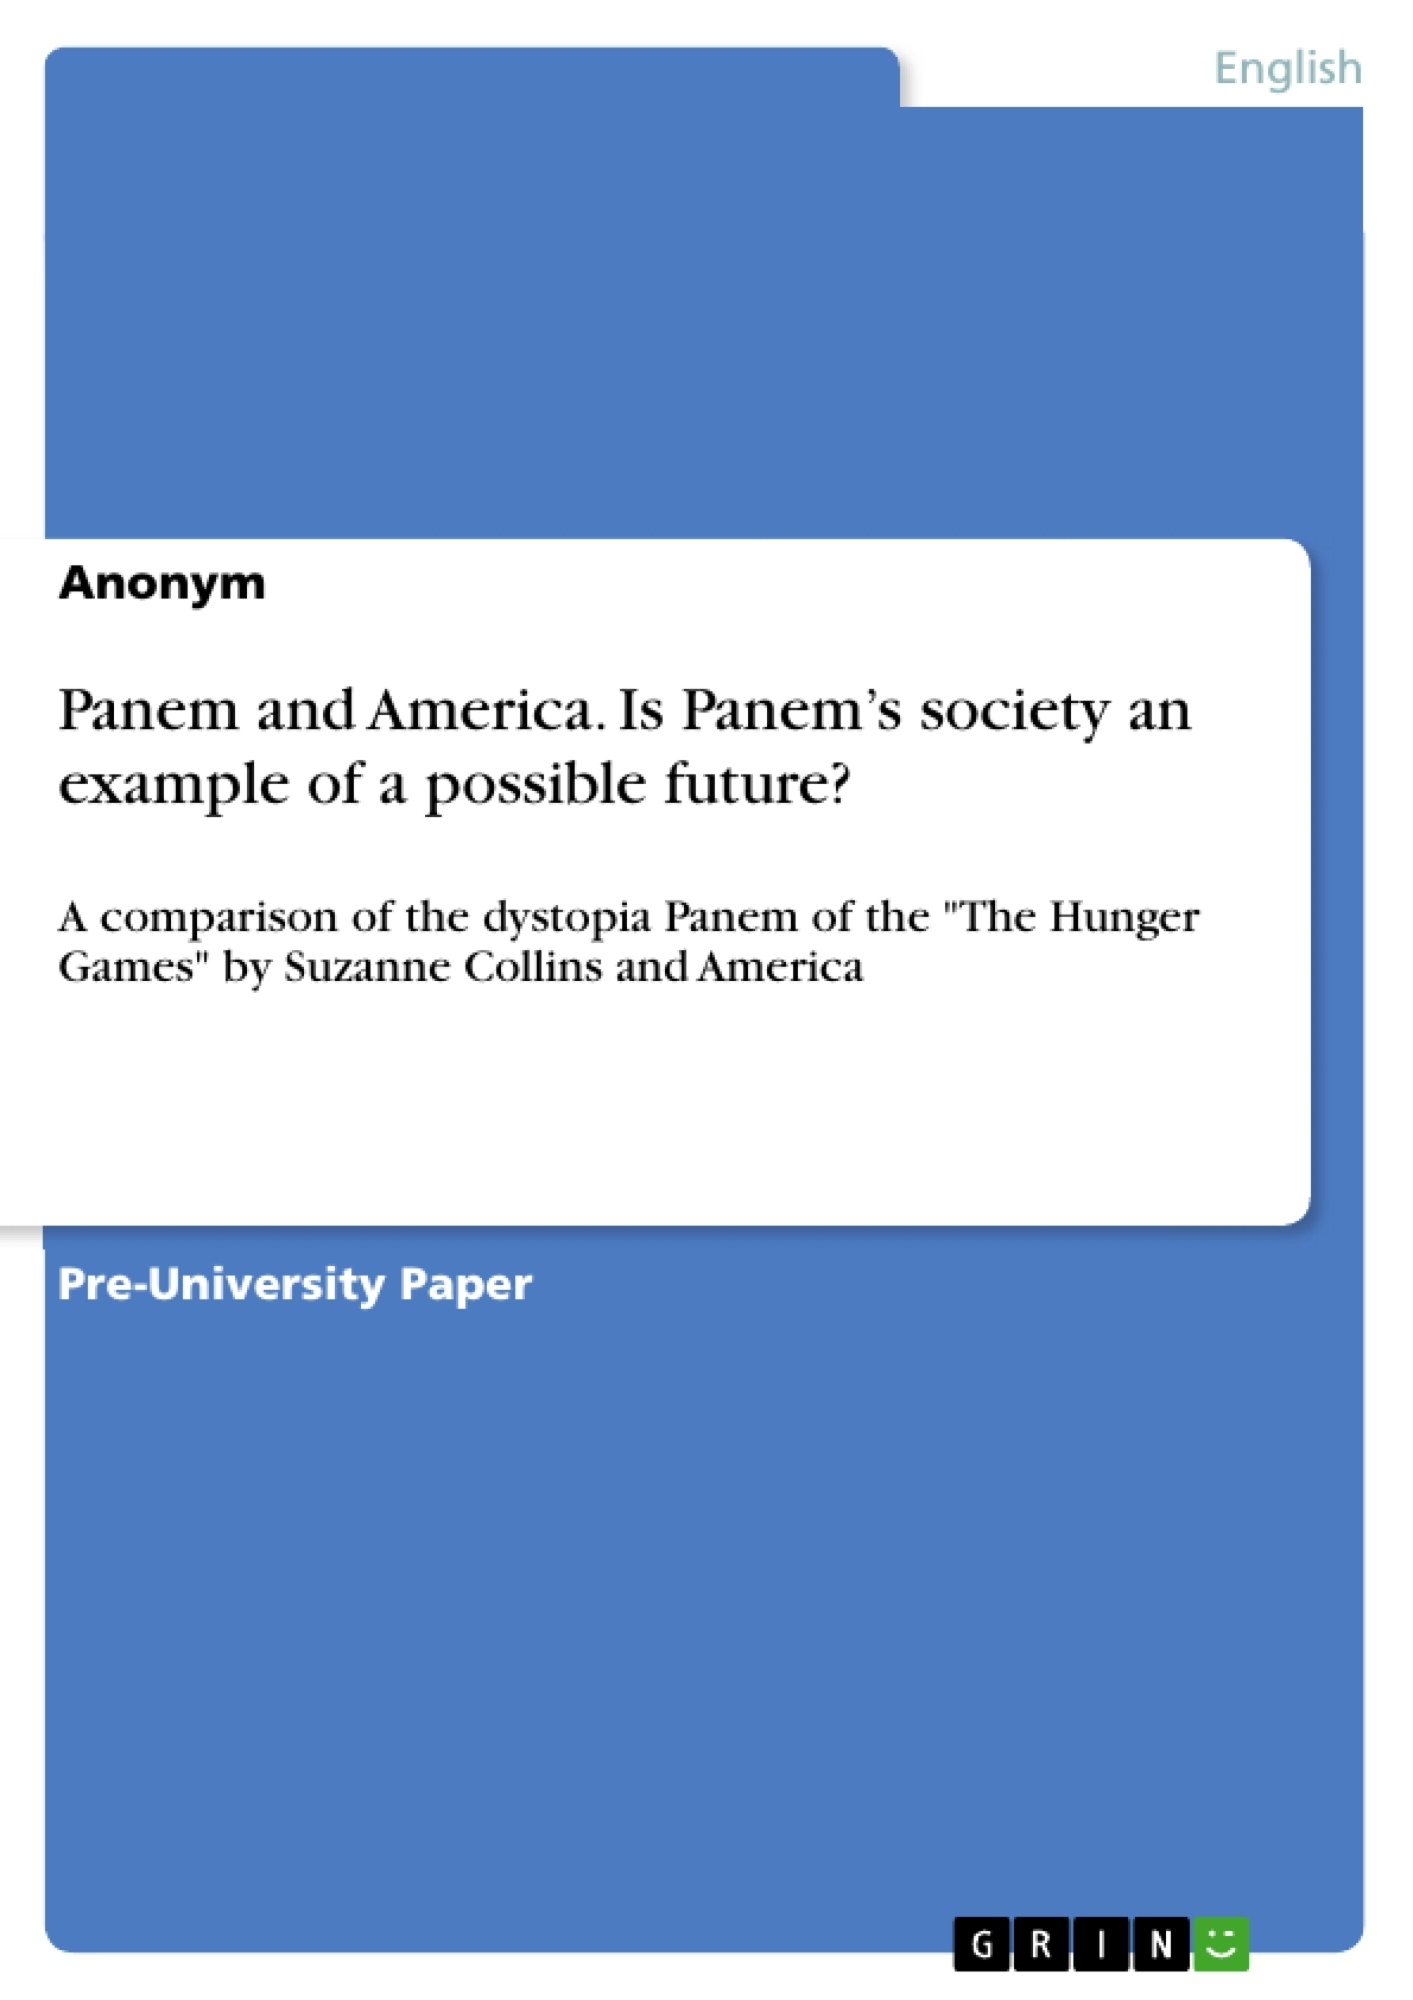 Title: Panem and America. Is Panem's society an example of a possible future?